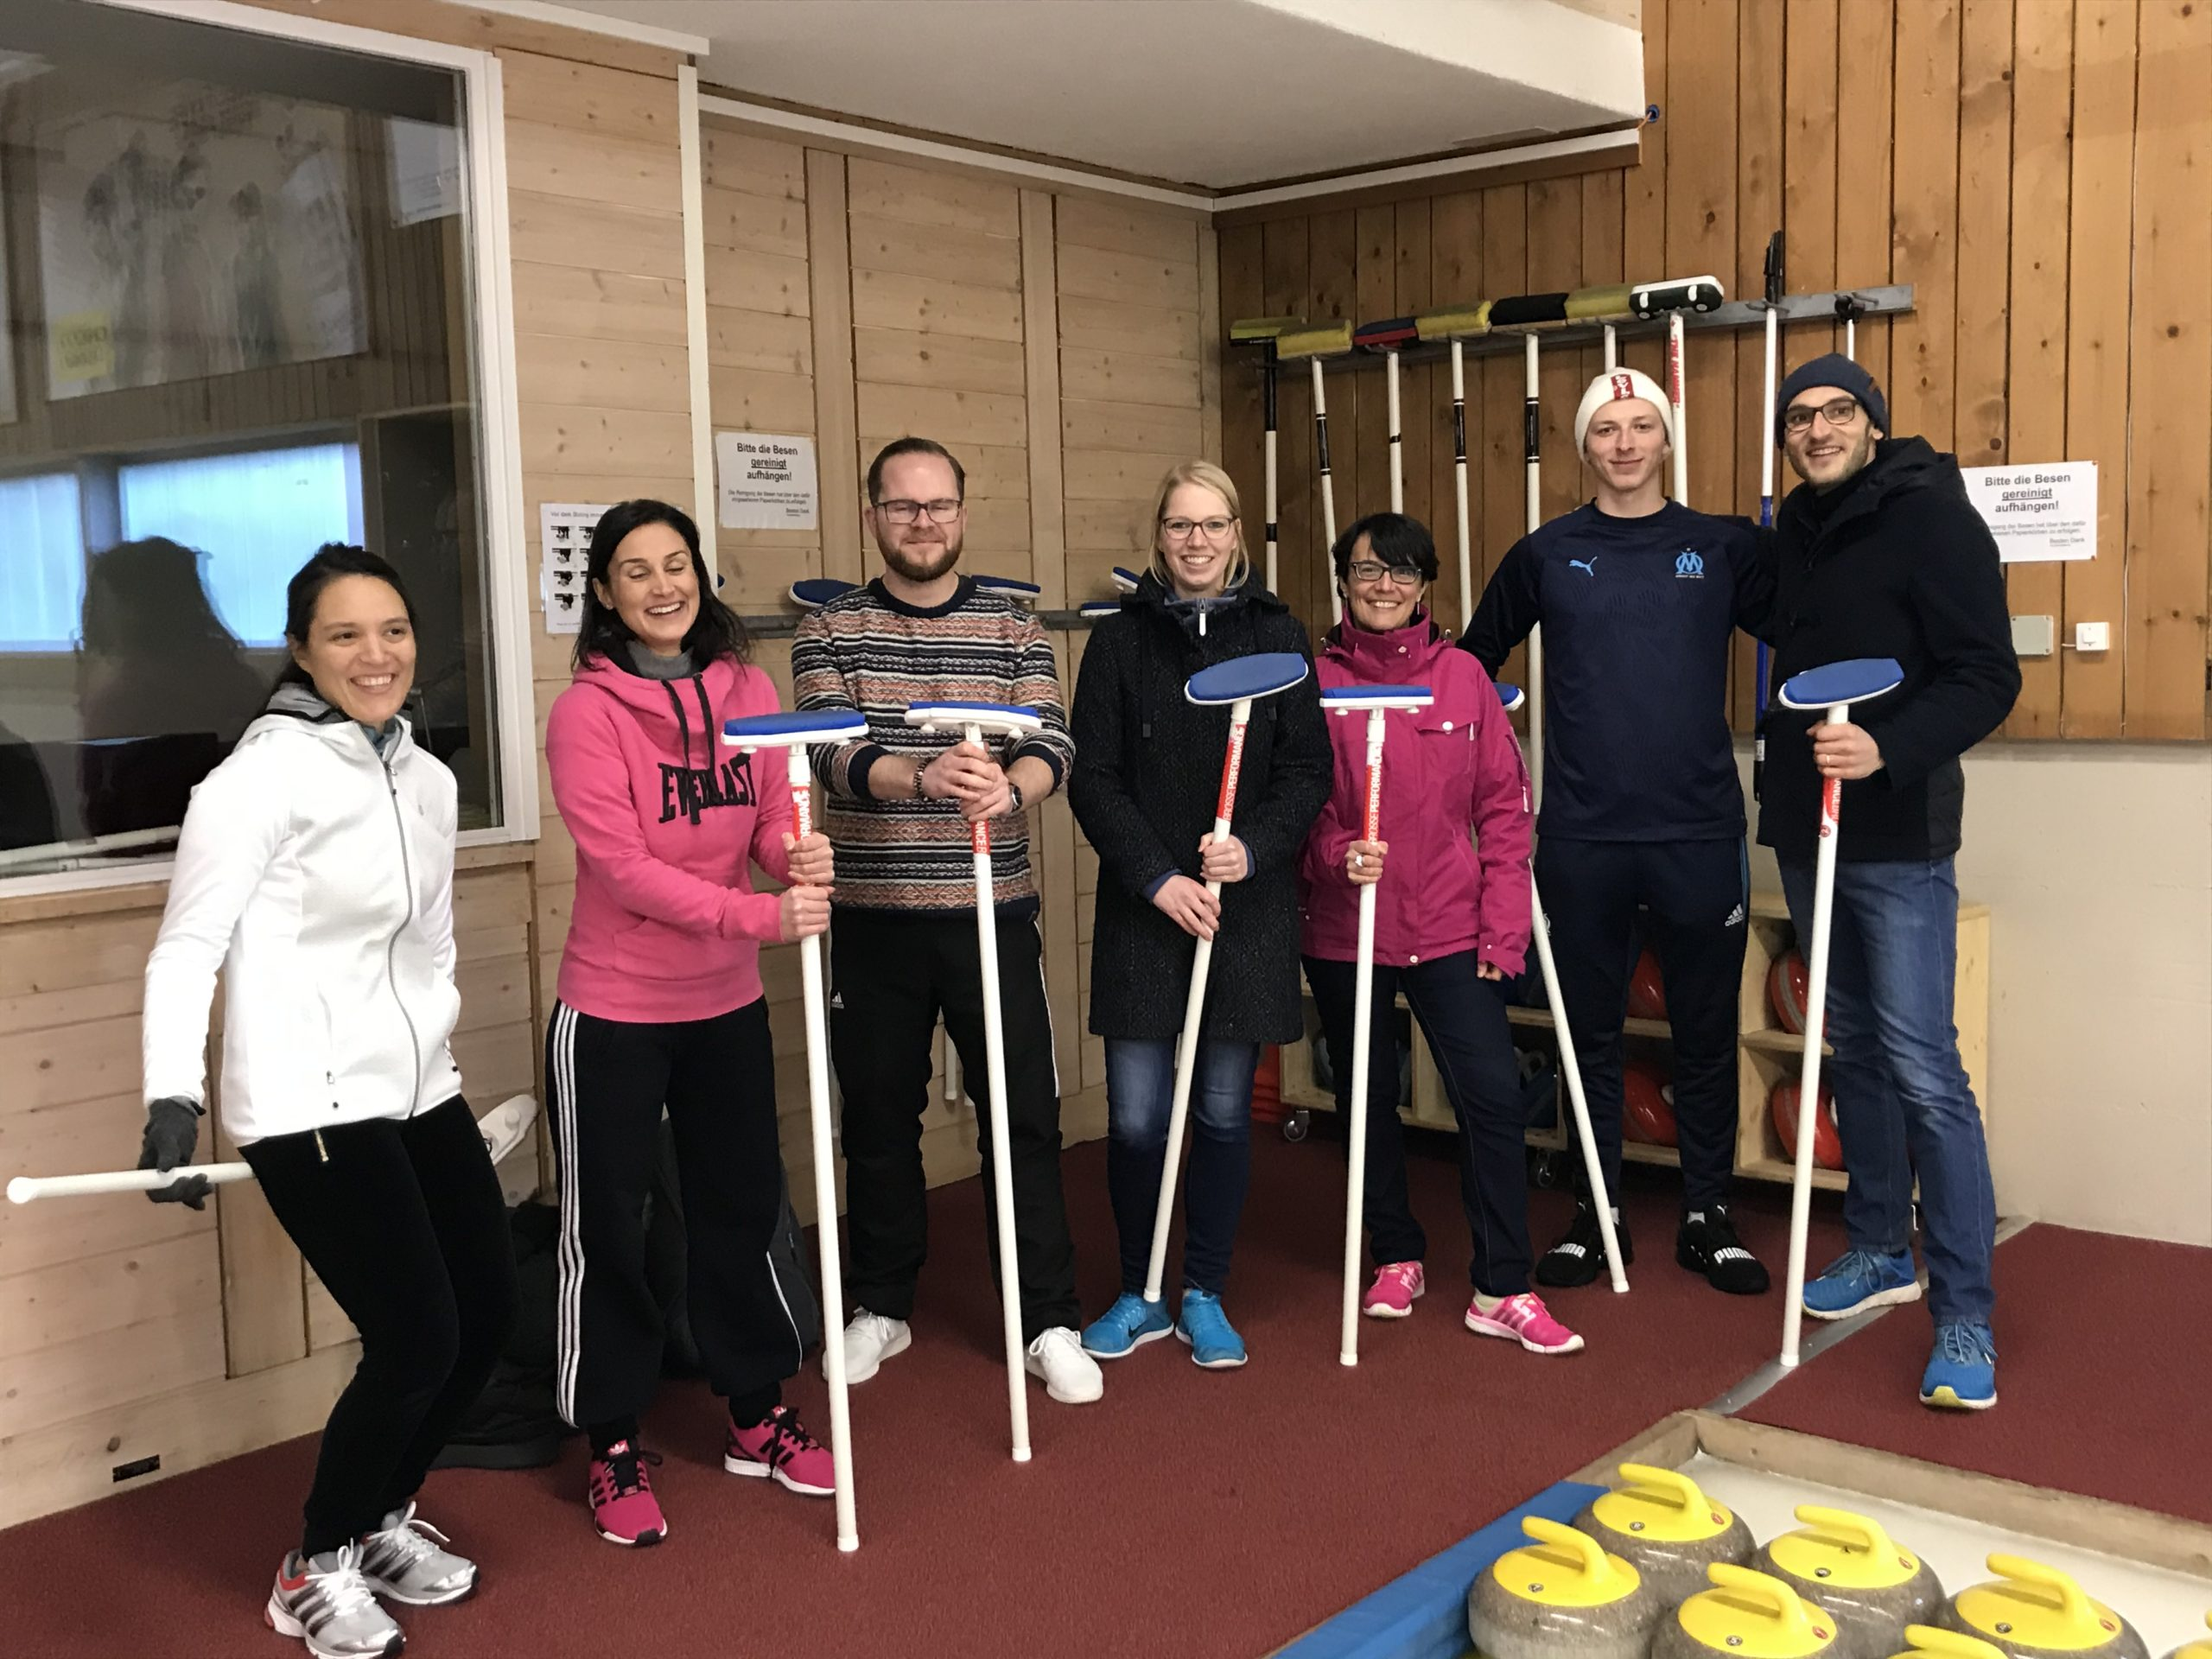 Curling event December 2019